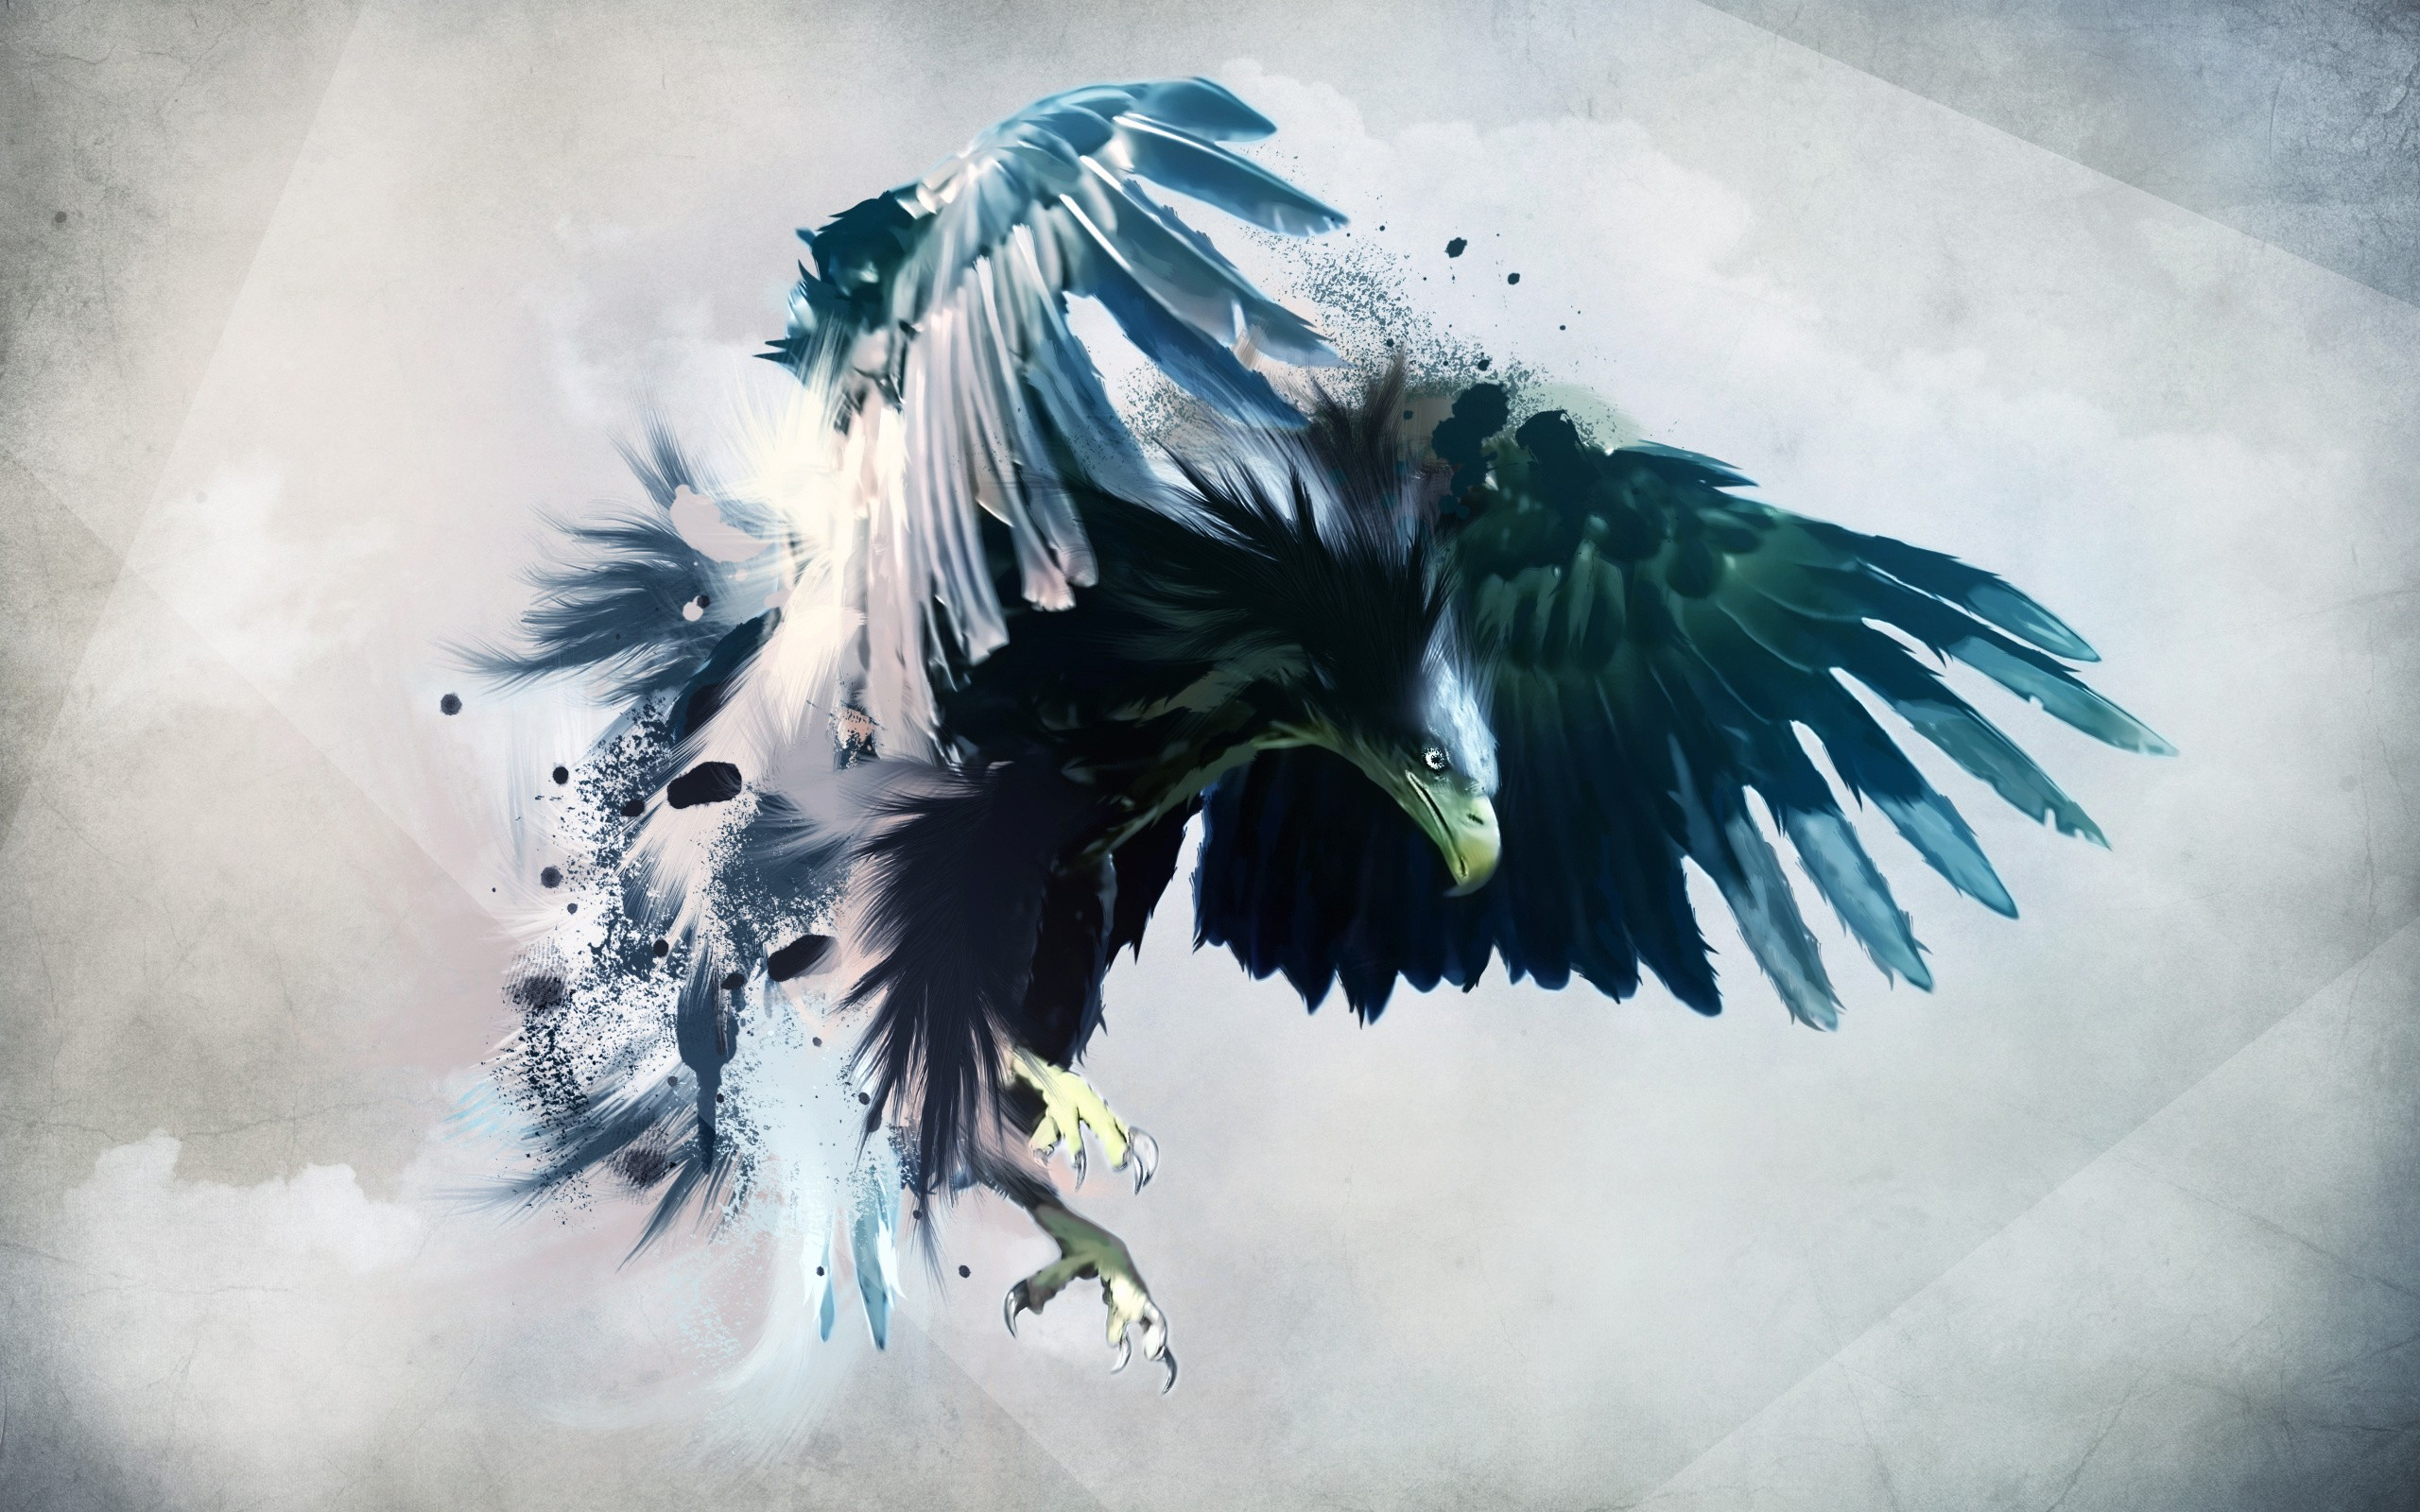 218 Bald Eagle HD Wallpapers | Backgrounds - Wallpaper Abyss